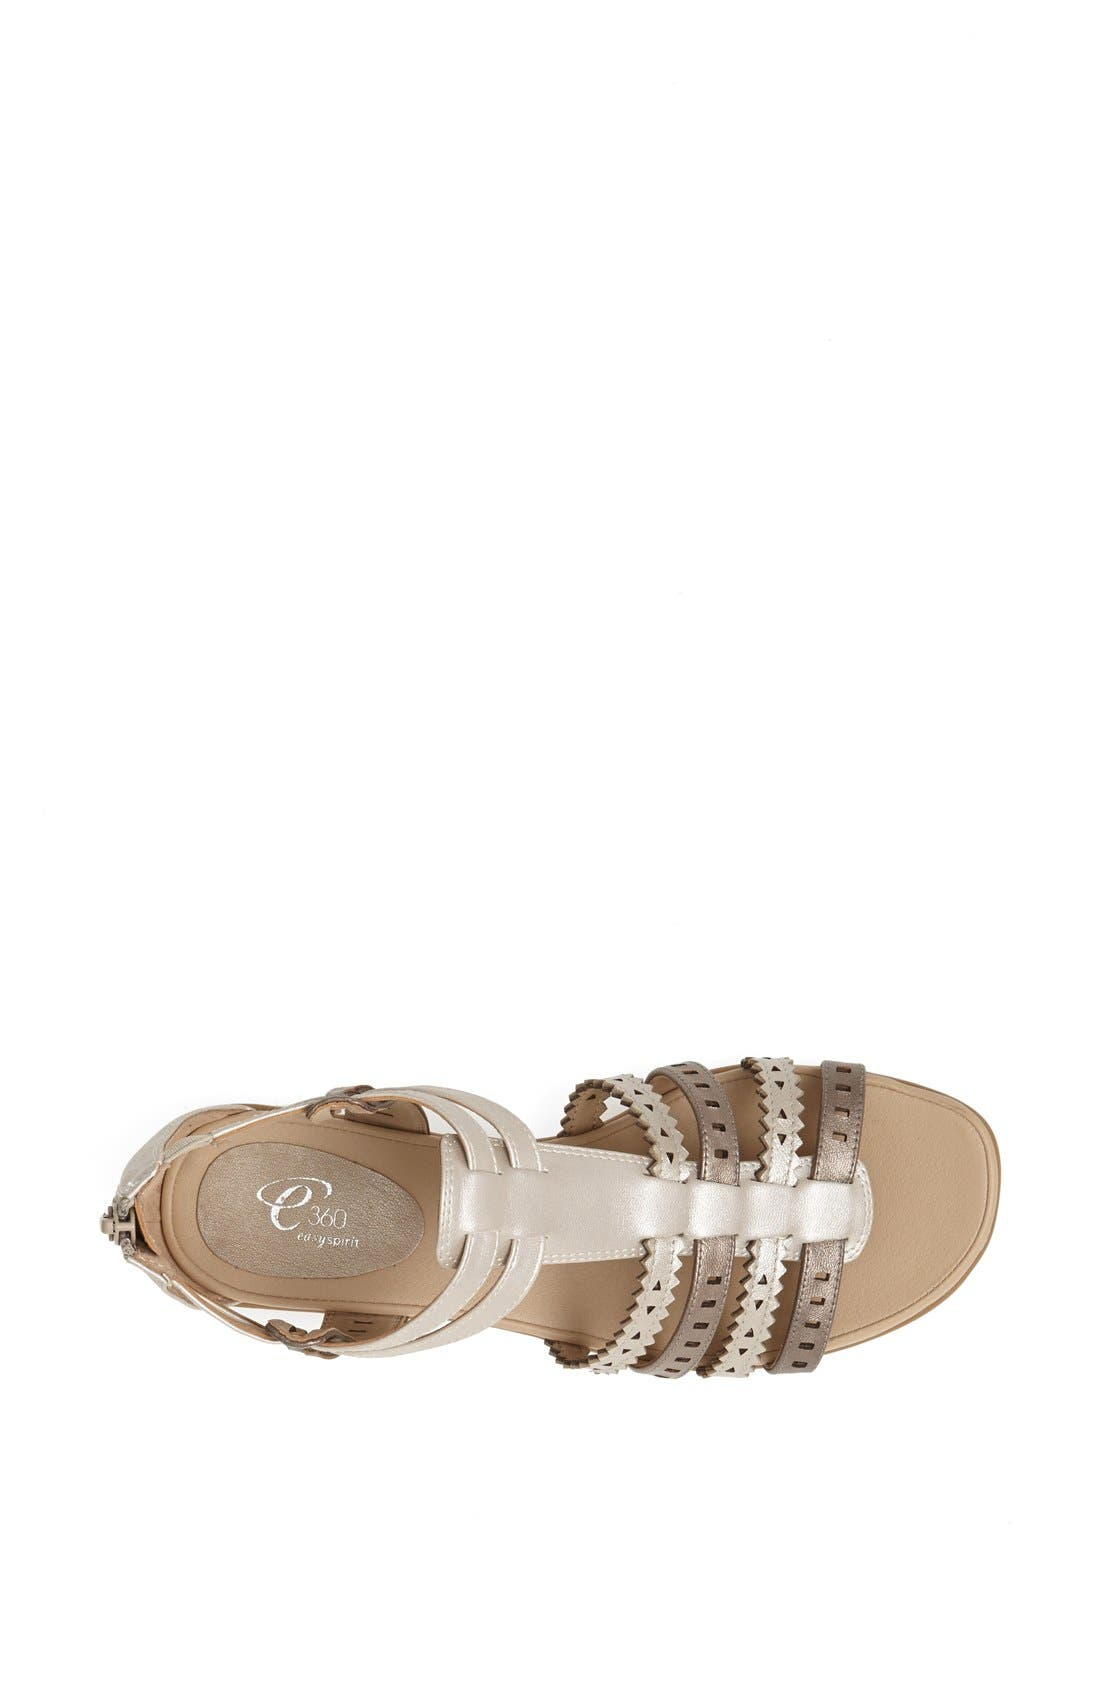 Alternate Image 3  - Easy Spirit 'e360 - Karelly' Pinked & Perforated Leather Back Zip Sandal (Women)